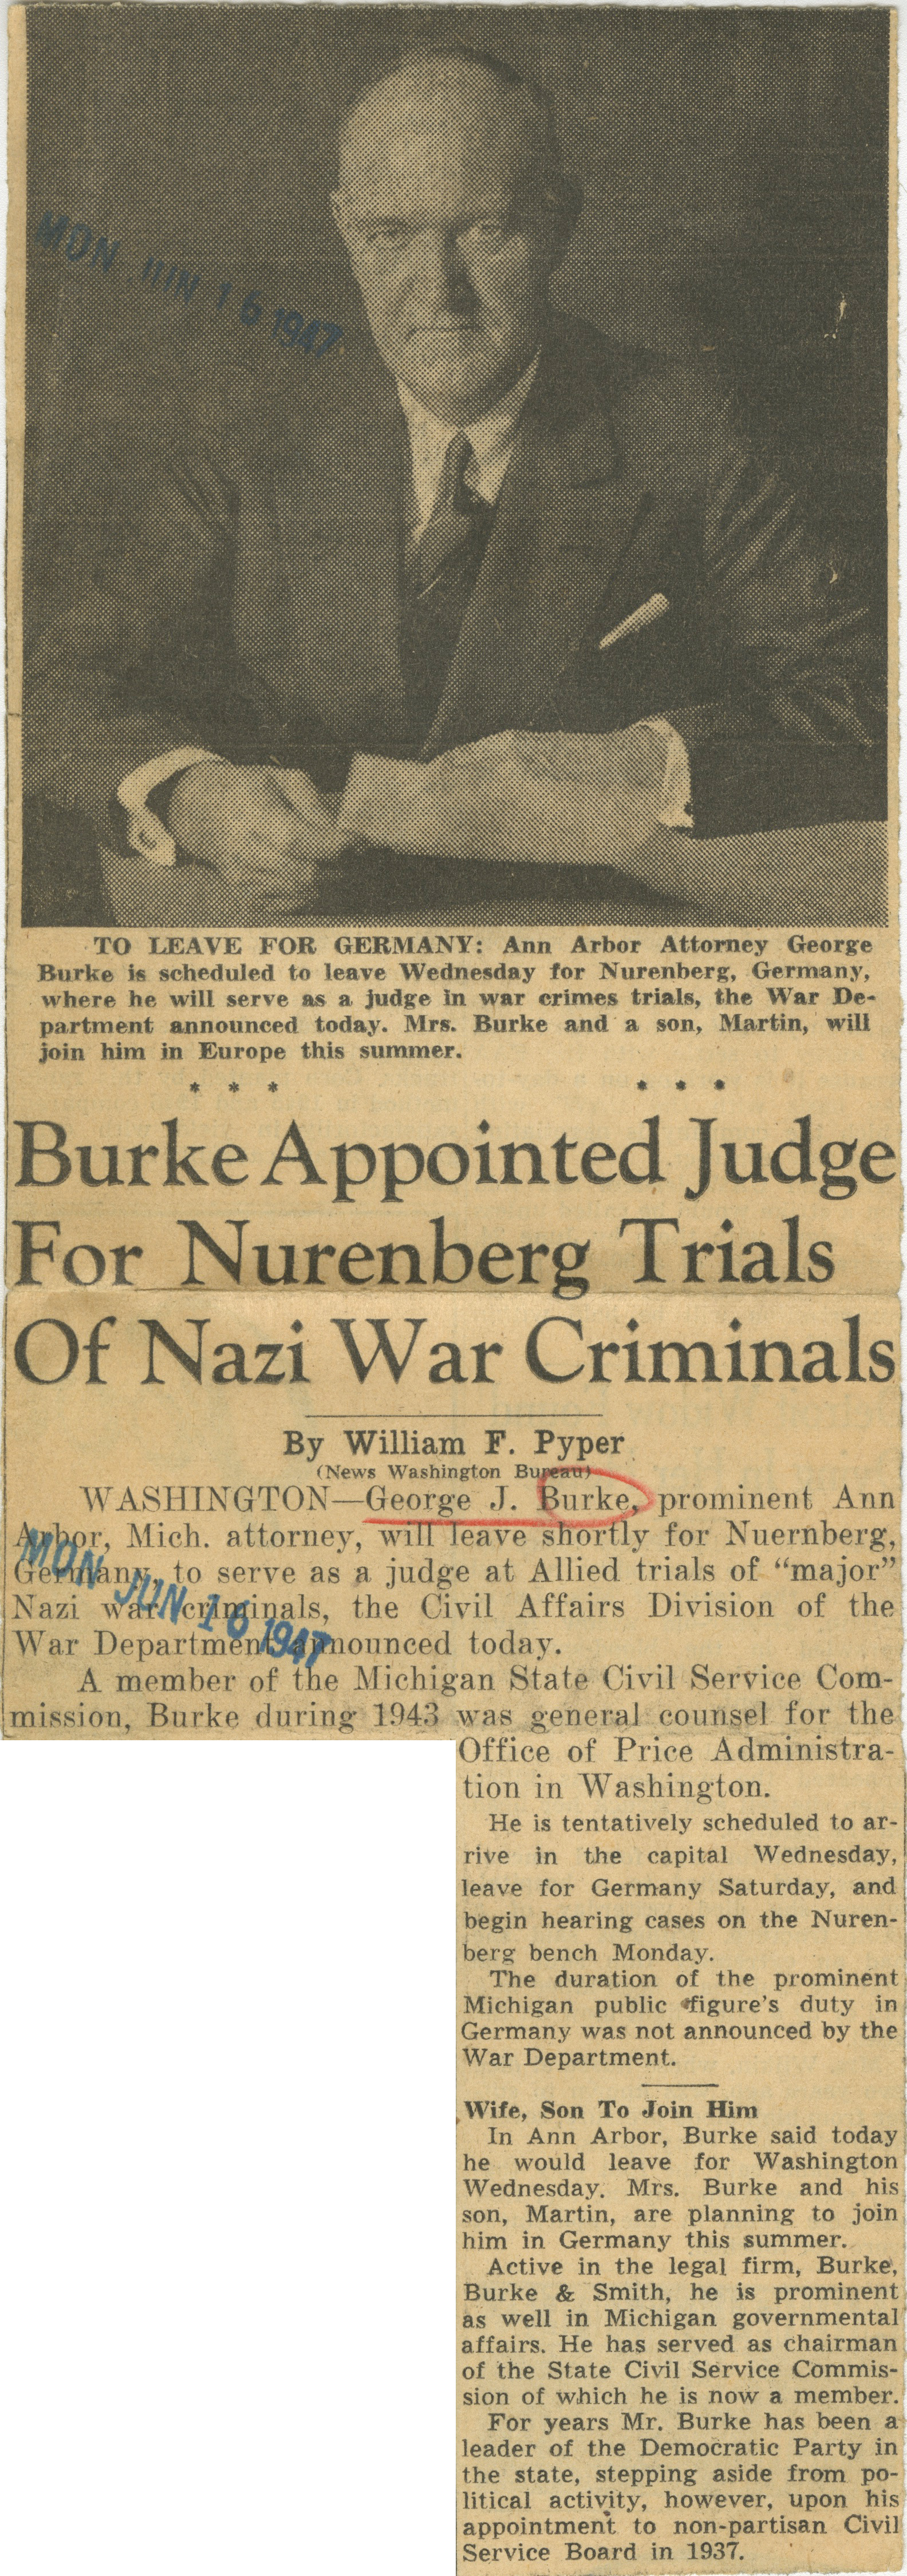 Burke Appointed Judge For Nurenberg Trials Of Nazi War Criminals image